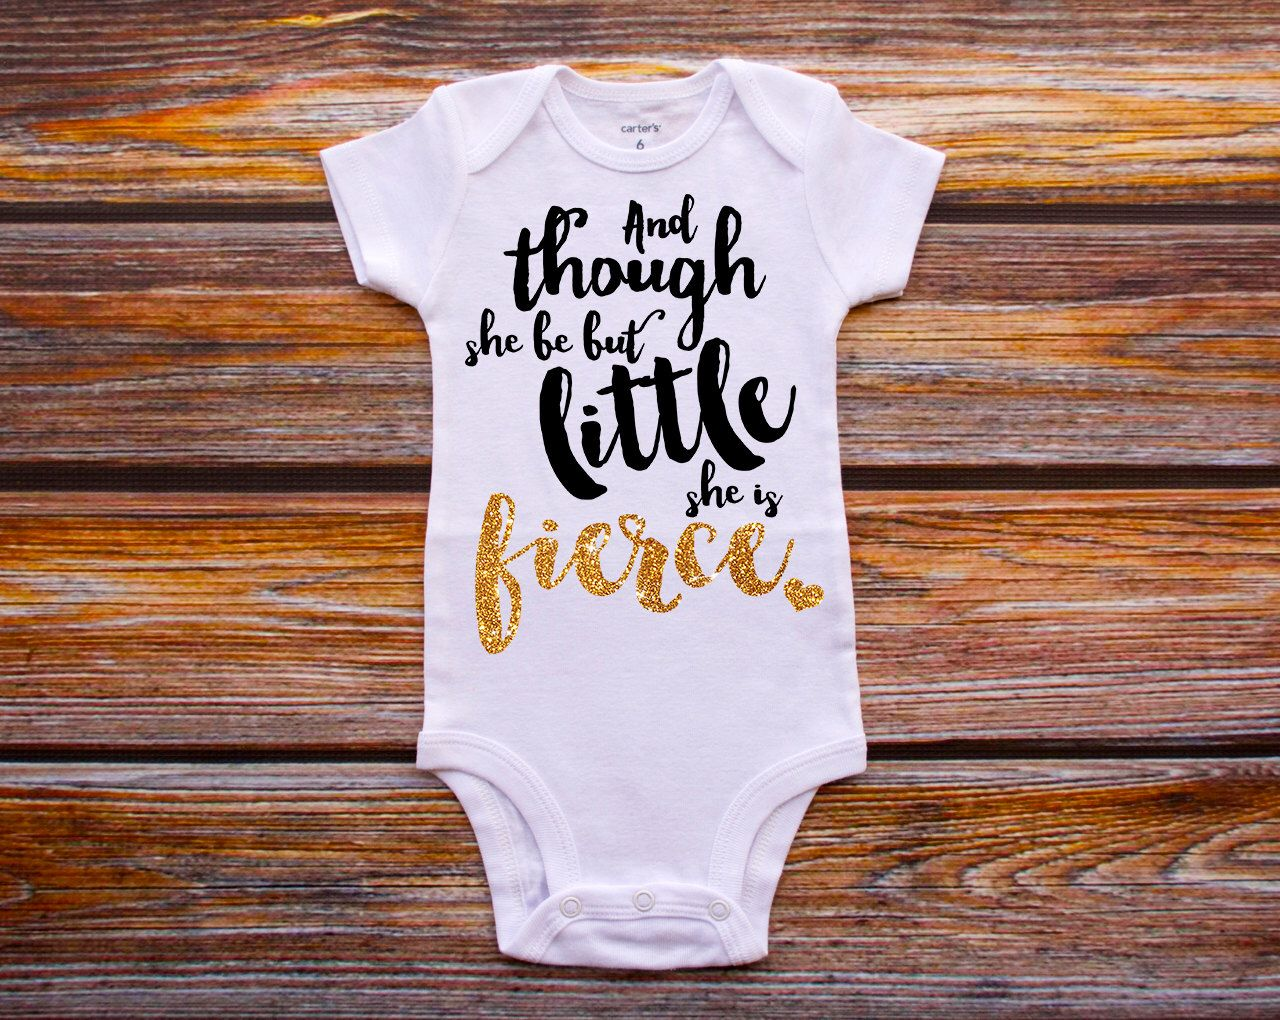 Baby Shower Gifts Hipster ~ She is fierce shirt baby shower gift bodysuit baby girl clothes baby